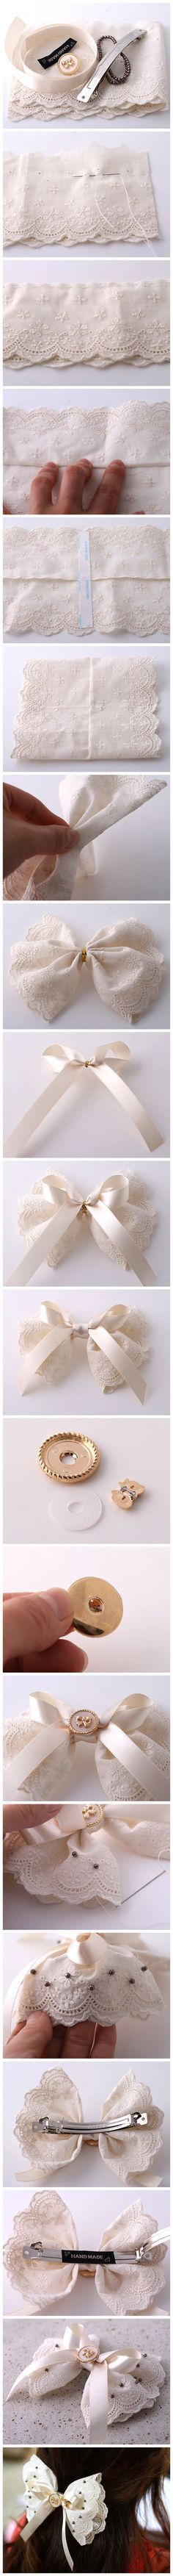 DIY Hair Bow diy accessories crafts home made easy crafts craft idea crafts ideas diy crafts diy idea do it yourself diy projects diy craft handmade diy fashion